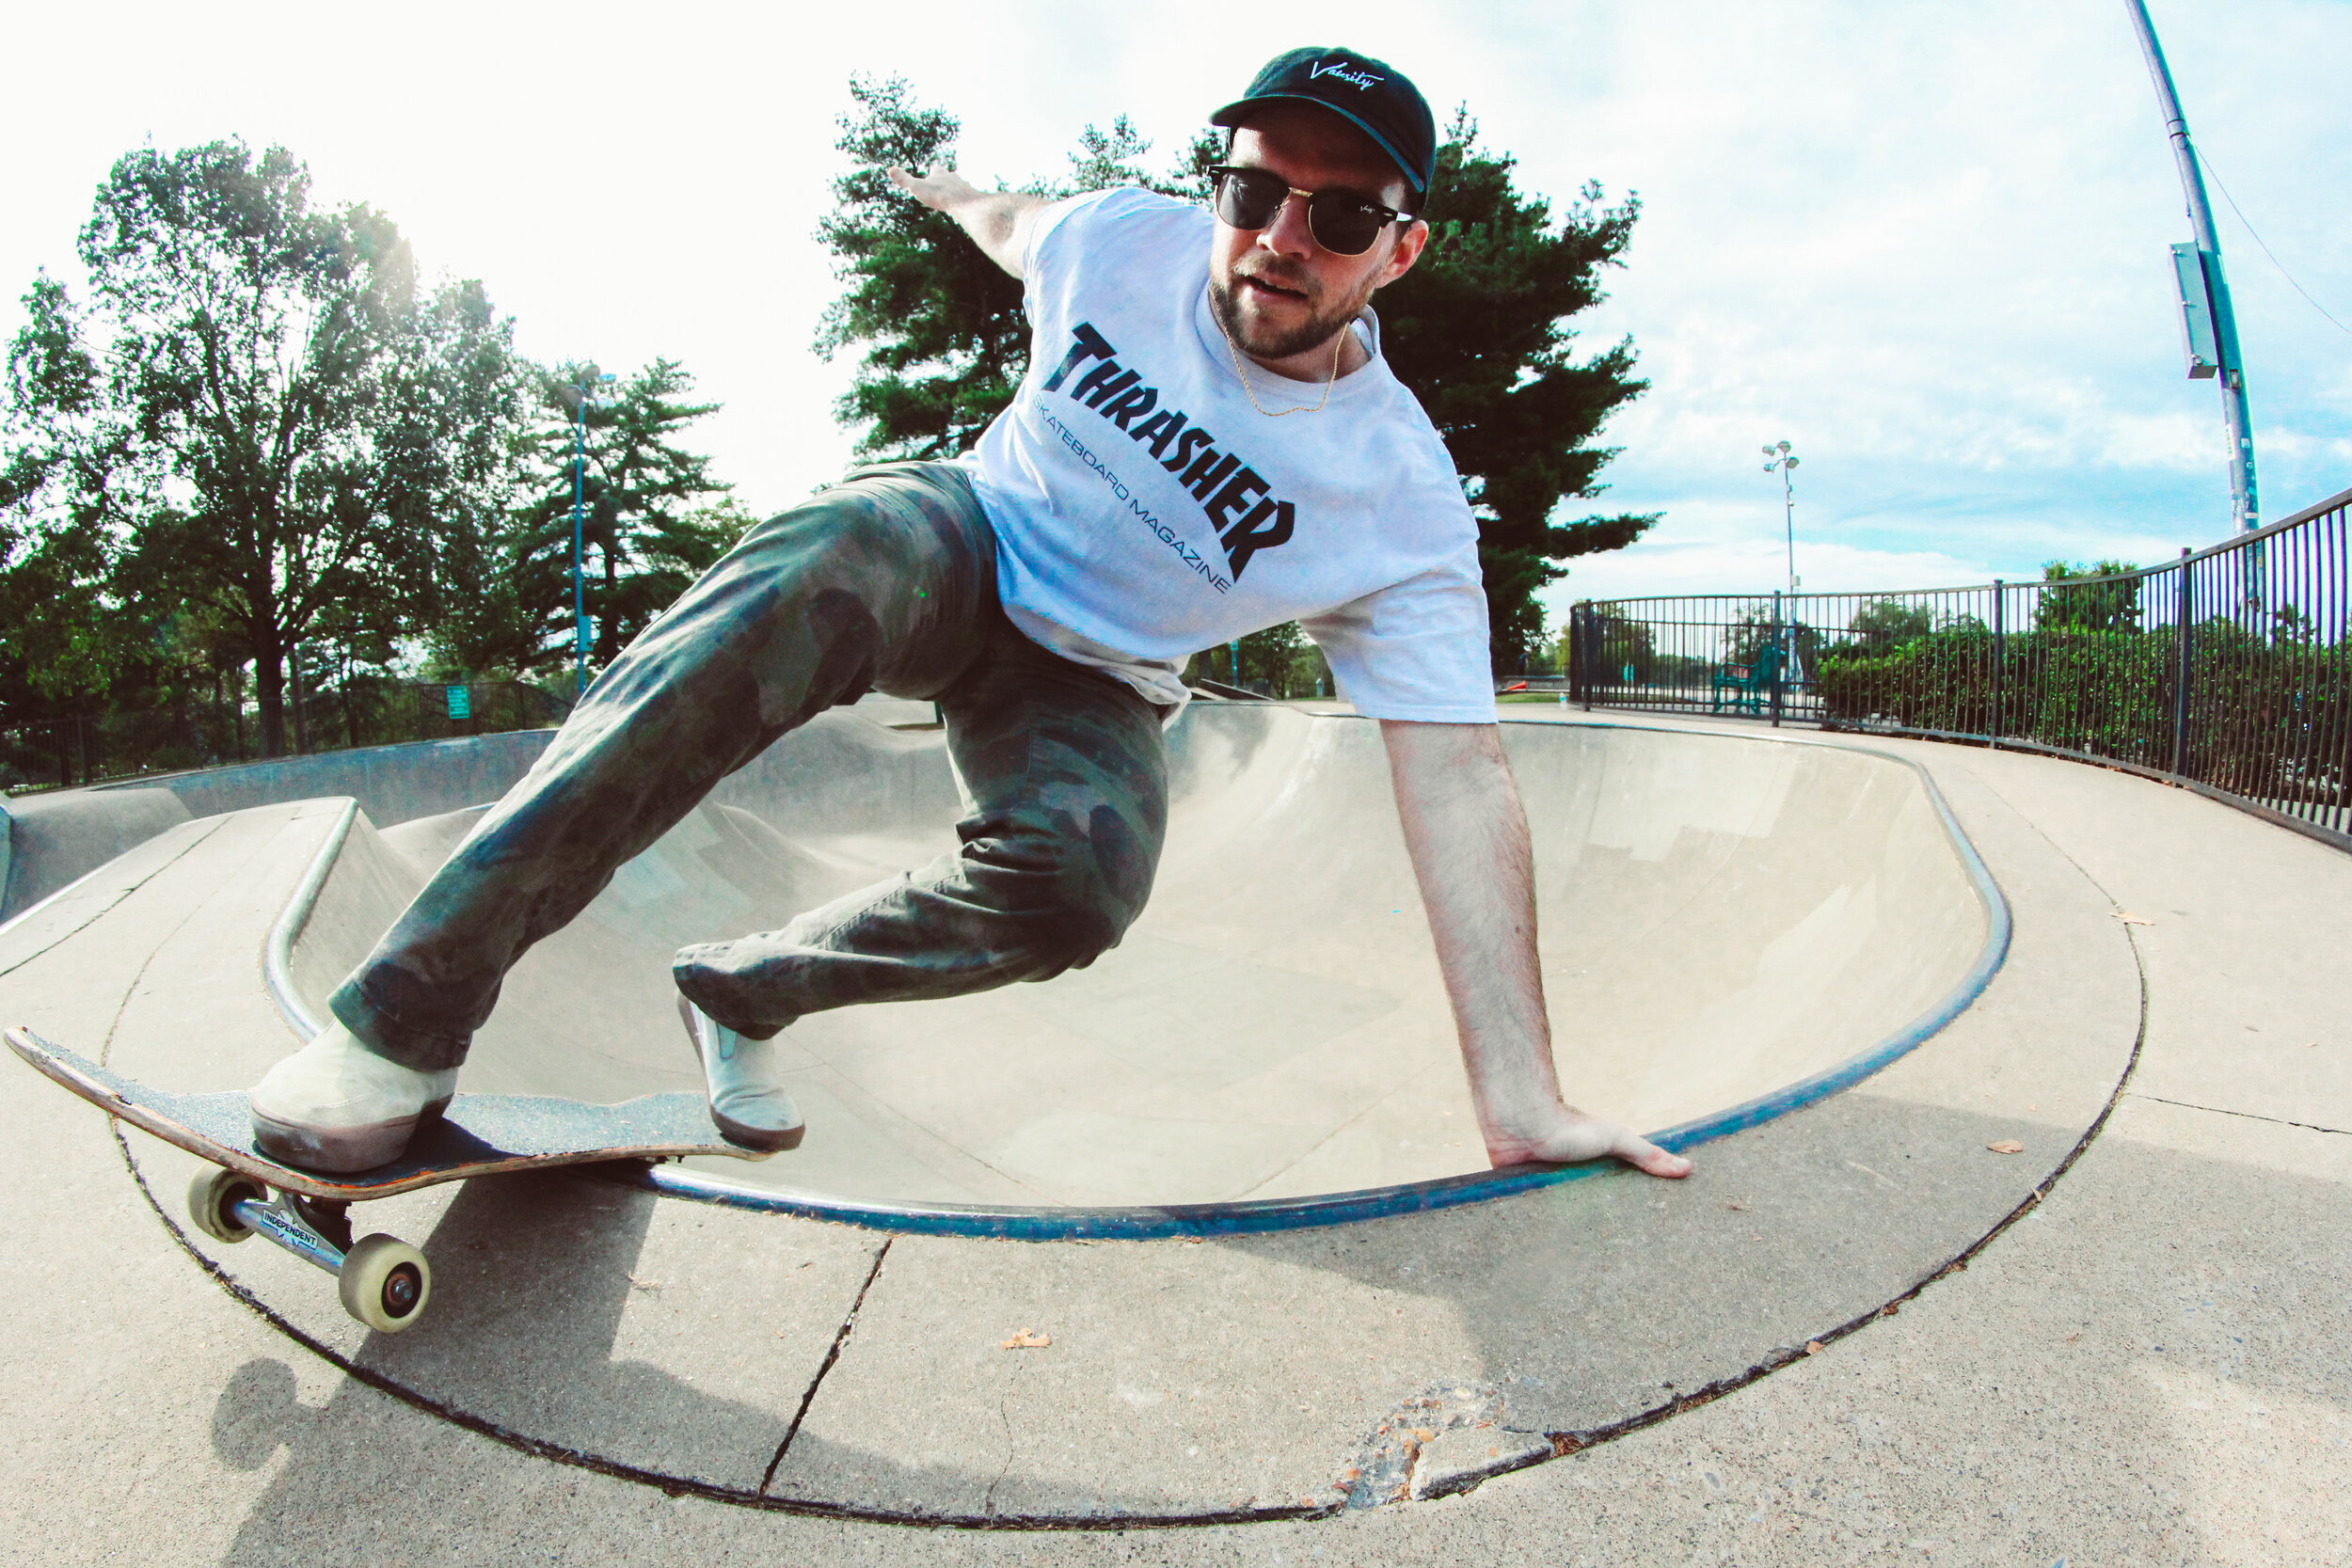 It didn't take long to find the local skatepark!  Dylan // Layback Front Rock